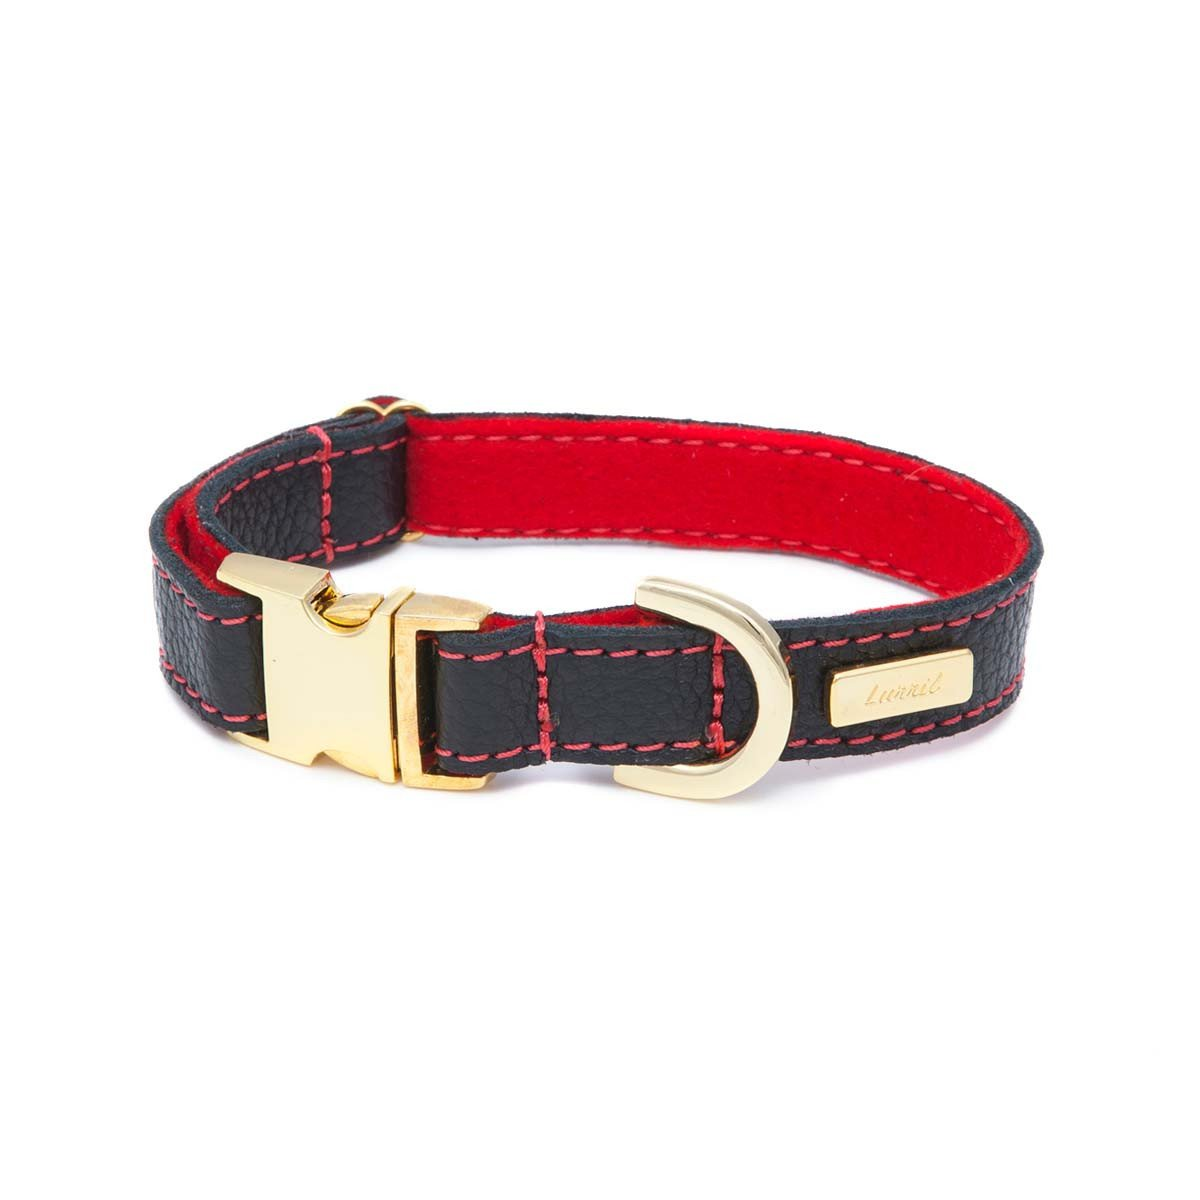 Black Leather Dog Collar - Soft, Durable Leather & Soft Wool Lining